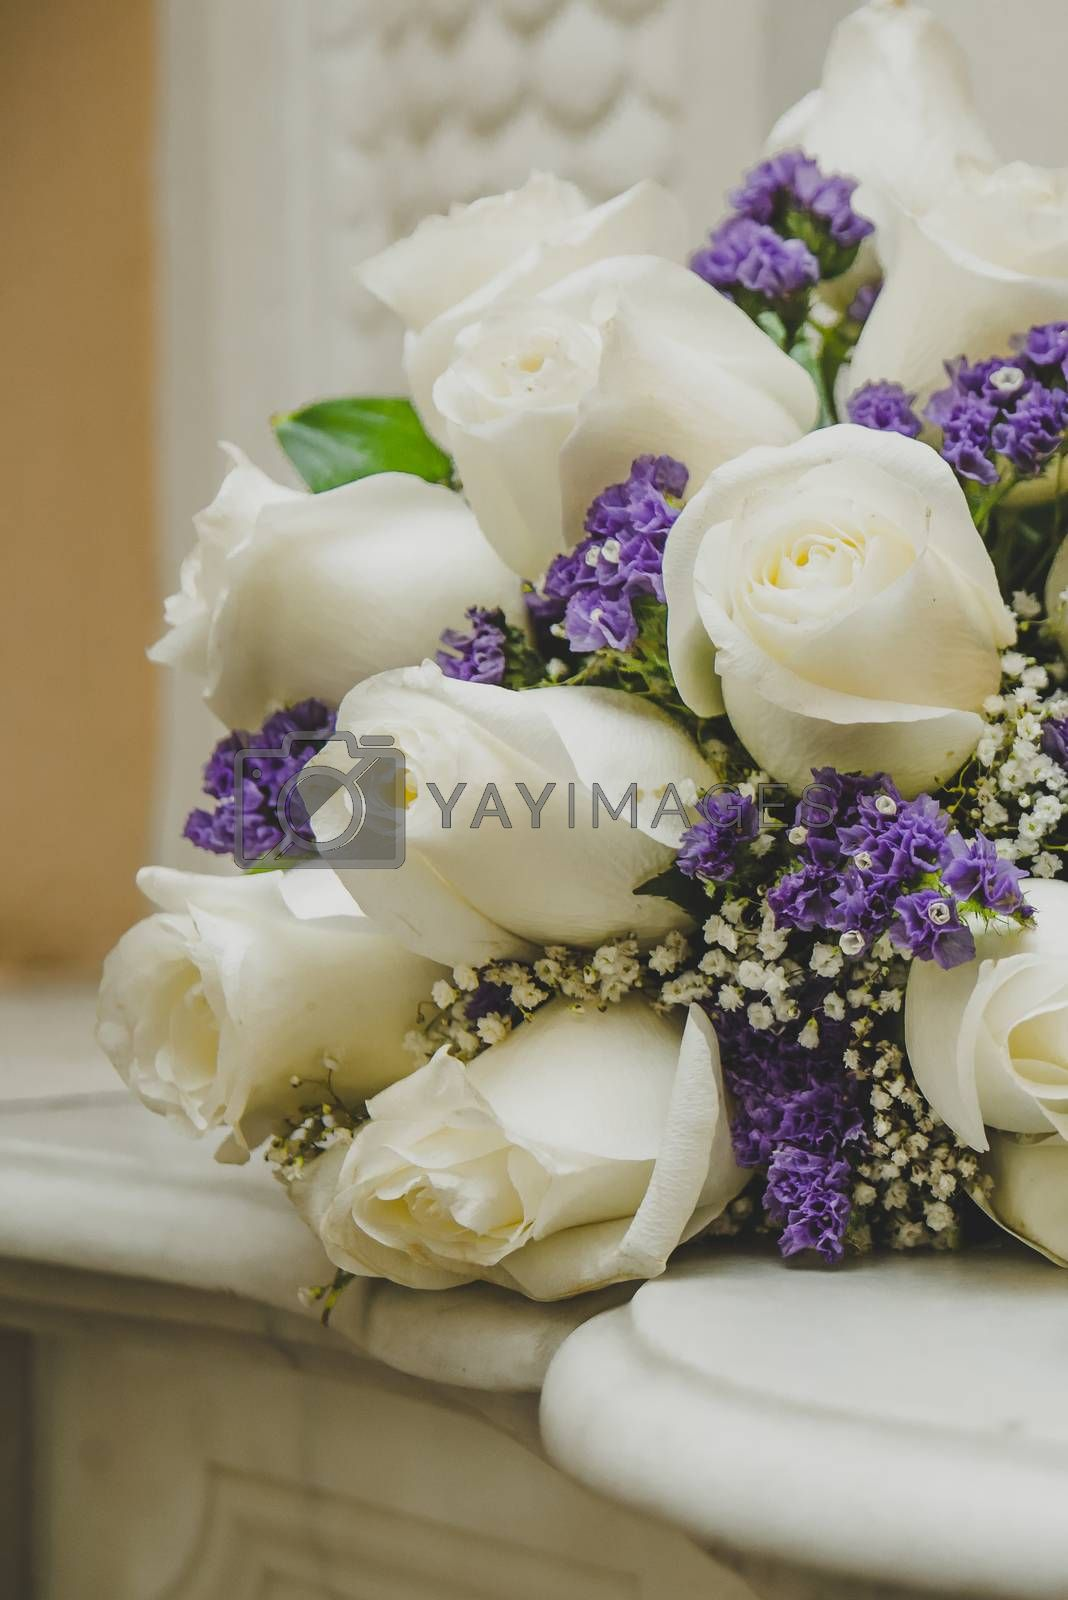 Beautiful wedding bouquet from white roses on wedding day